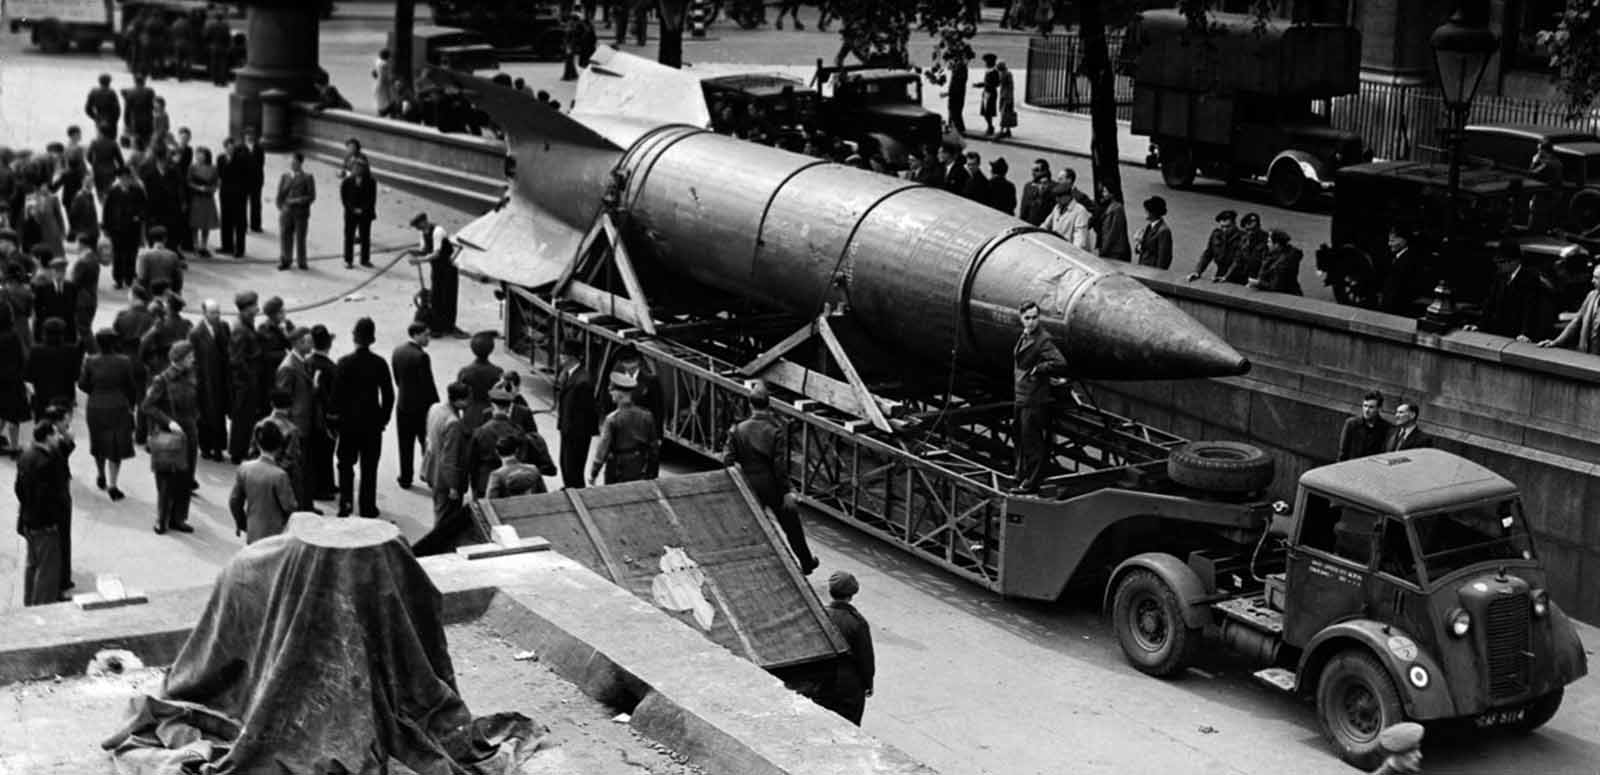 A V-2 rocket arriving in Trafalgar Square, London, to take part in the London National Savings Week campaign. 1945.